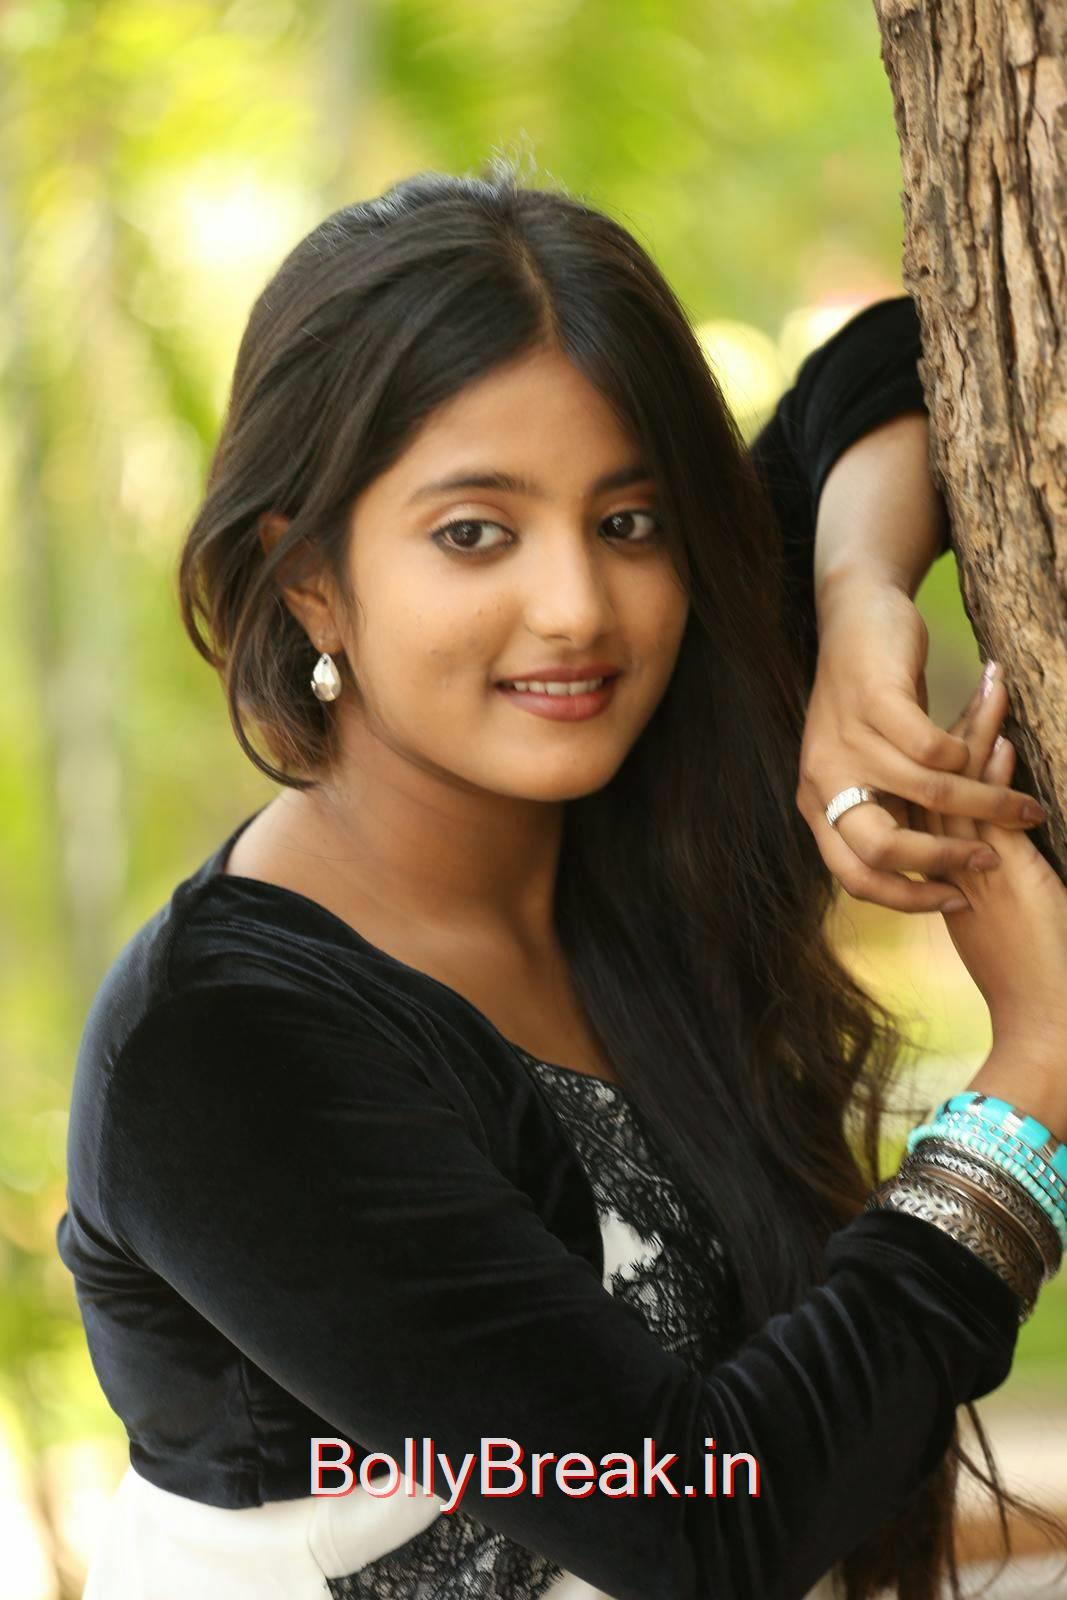 High Quality Ulka Gupta Pics, Cute, Sweet, Innocent Indian Actress Ulka Gupta hot HD Photo Gallery Pics